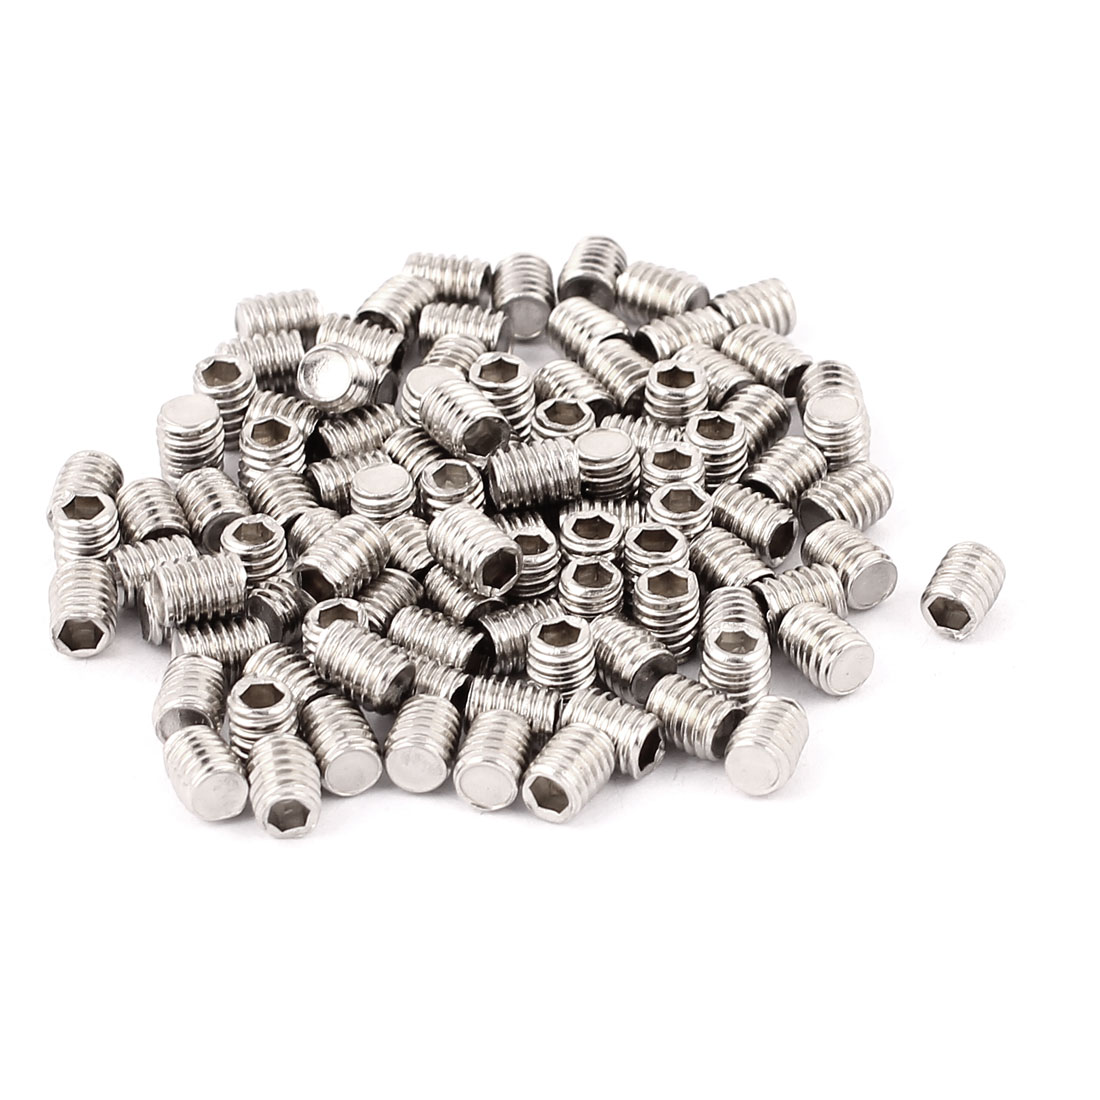 100pcs M4x5mm Flat Point Grub Screws Hex Socket Set Screw